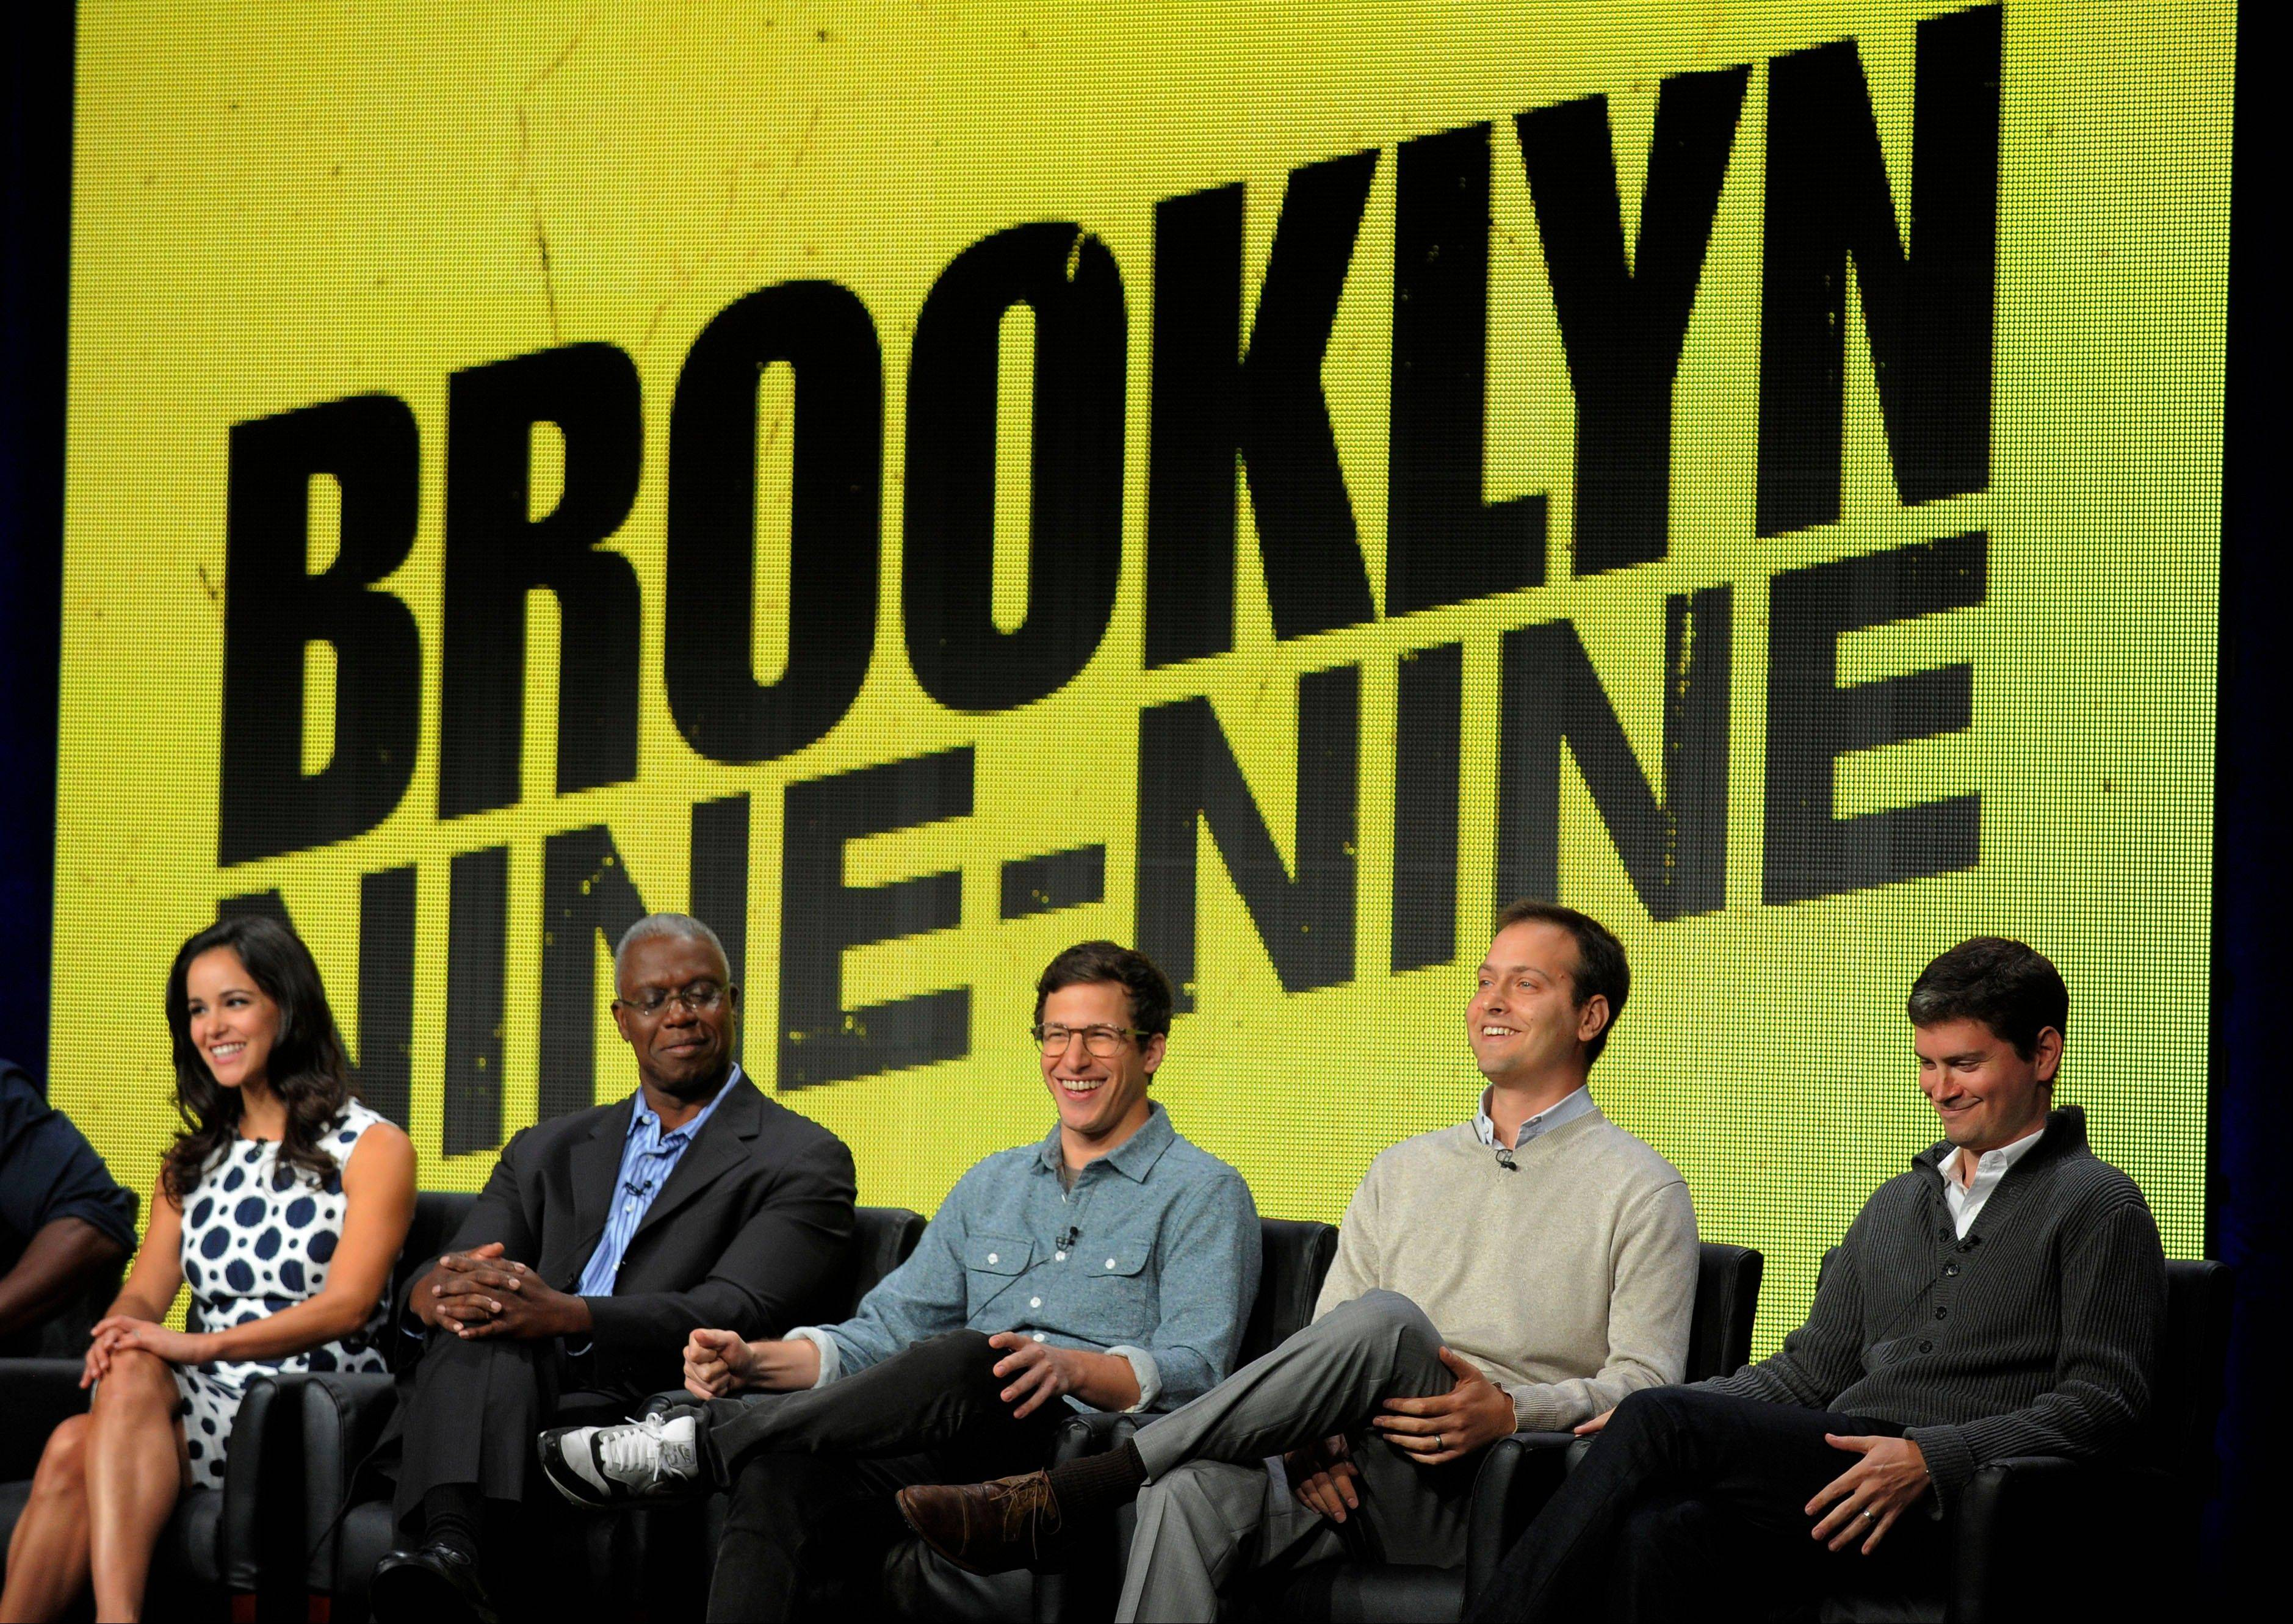 From left, �Brooklyn Nine-Nine� cast members Melissa Fumero, Andre Braugher and Andy Samberg, and co-creators/executive producers Dan Goor and Michael Schur take part in an Aug. 1 panel discussion on the series. Fox said Friday it�s ordering nine more episodes for a full first season of 22 episodes.